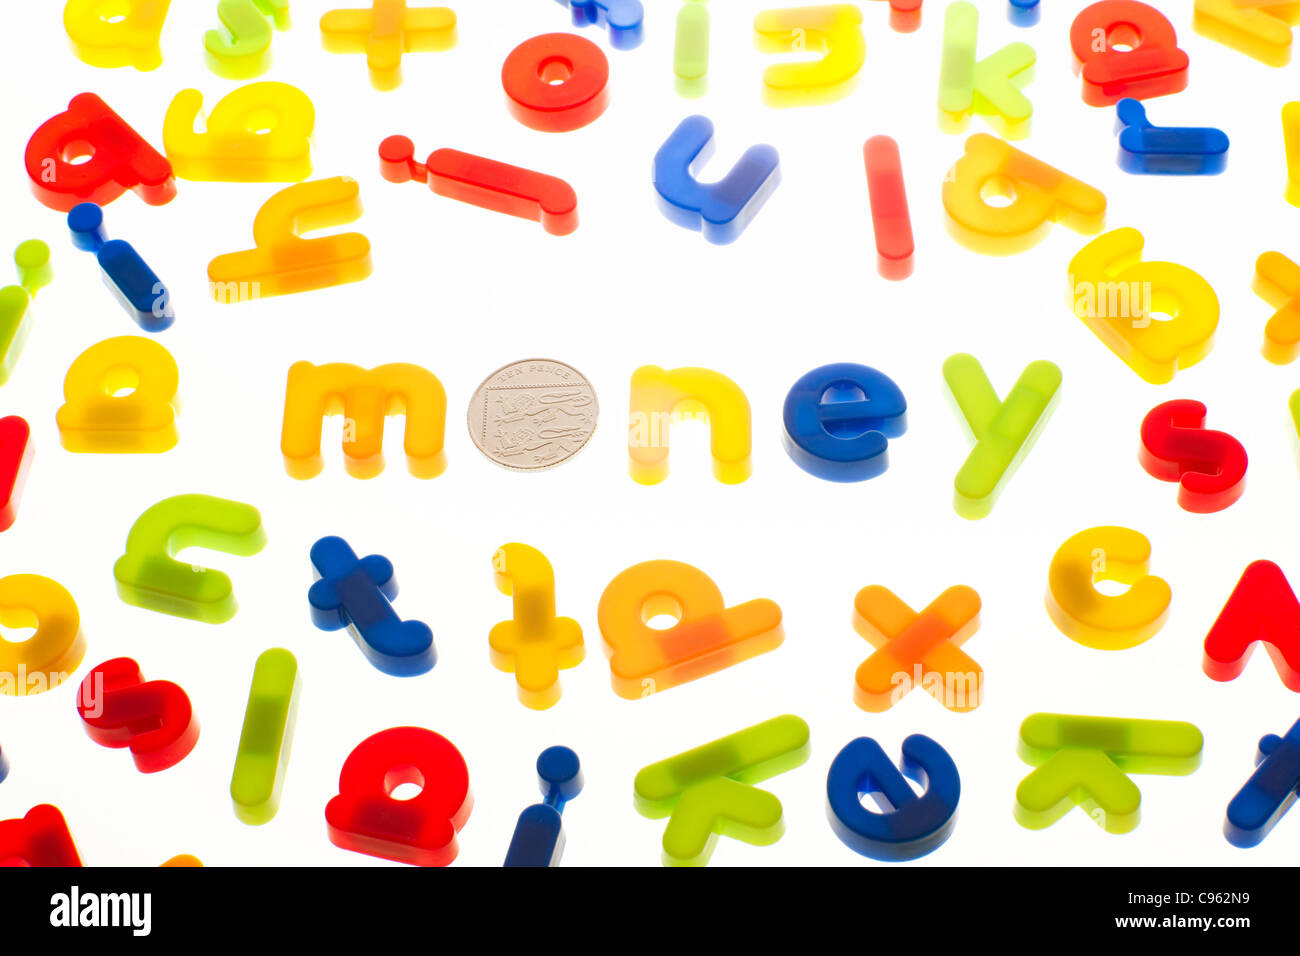 Money, conceptual image. - Stock Image